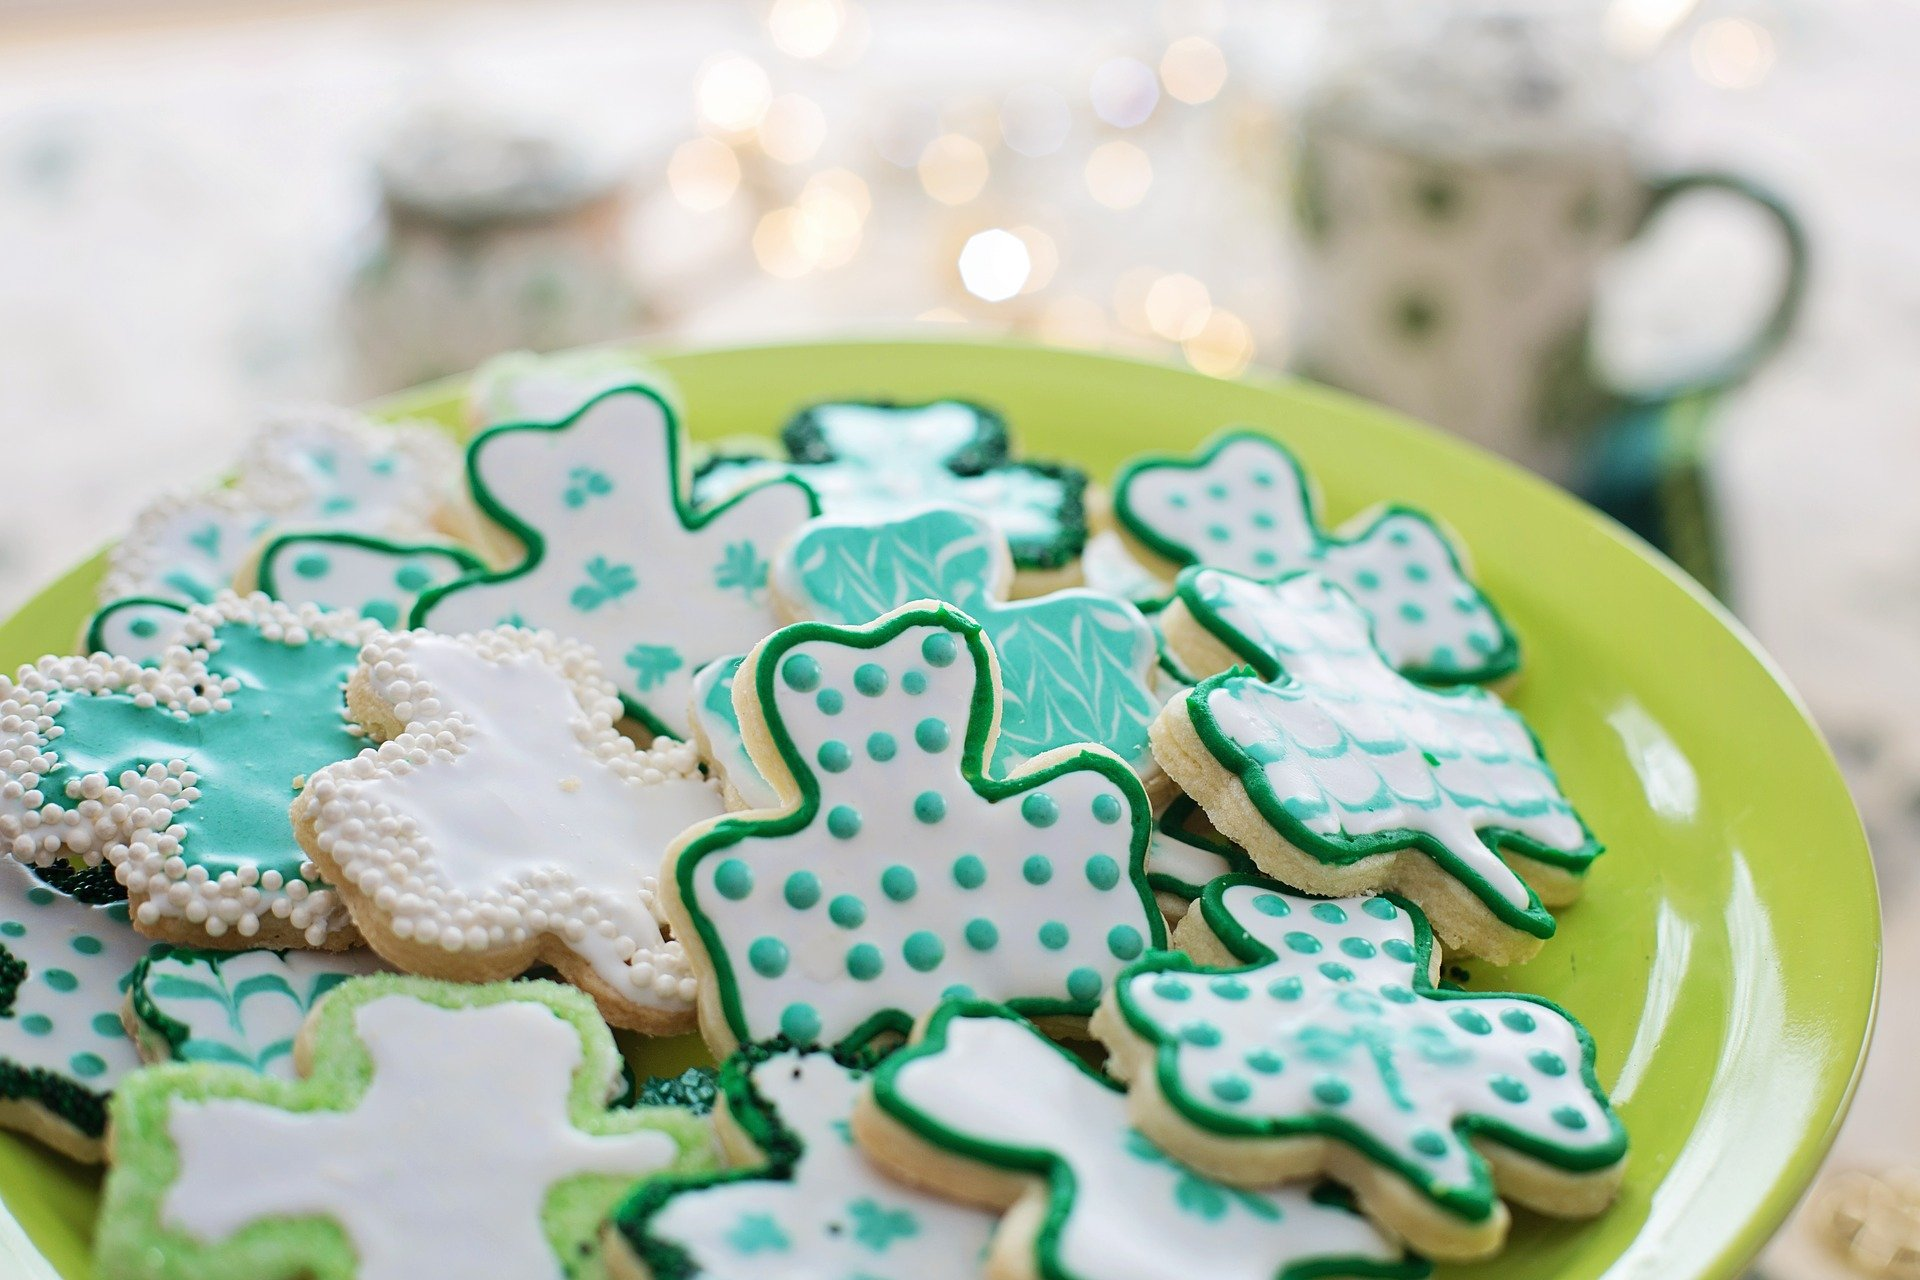 Fun and Creative Ways to Celebrate St. Patrick's Day